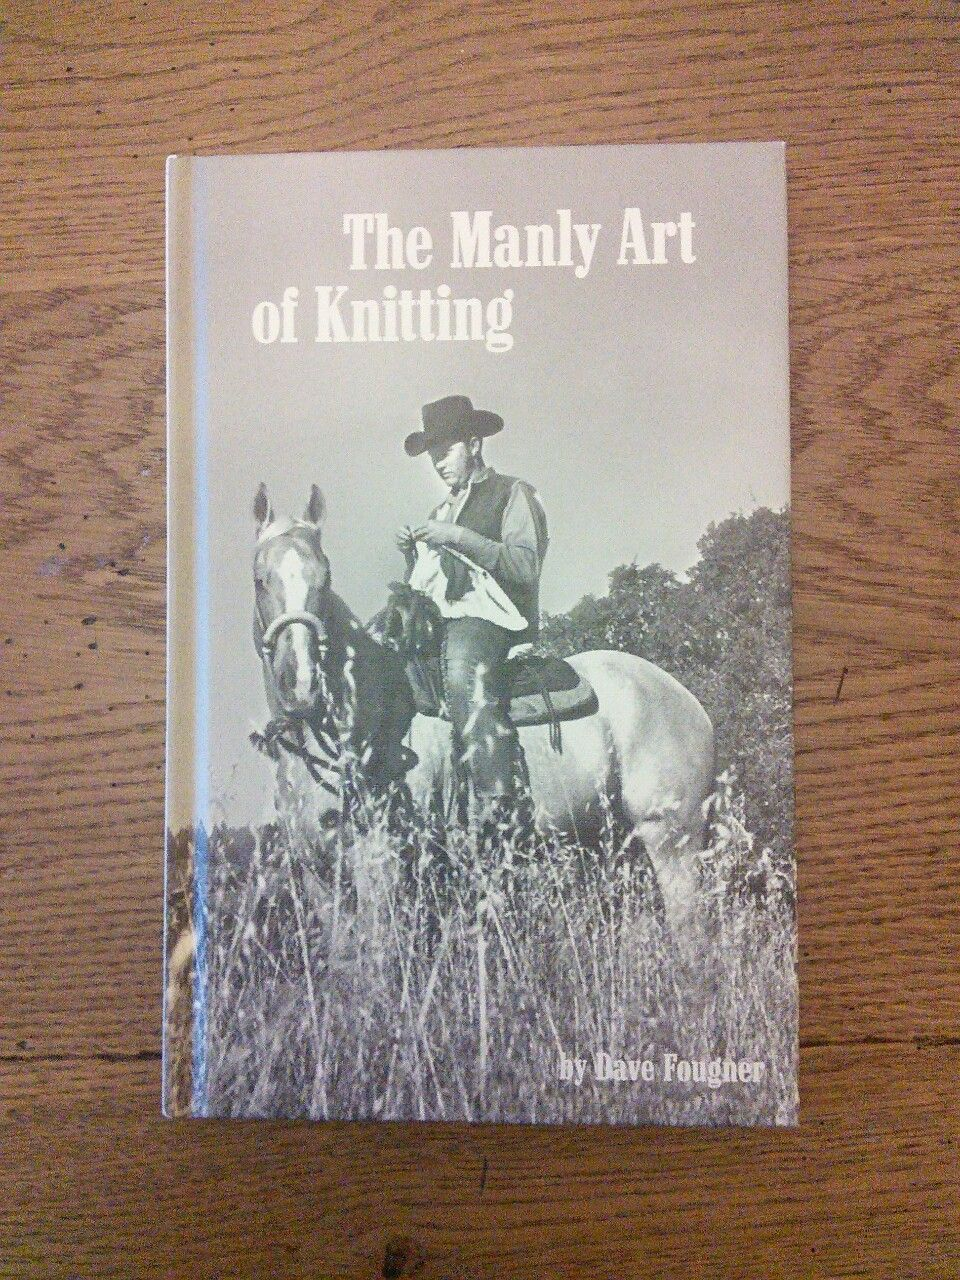 If you have just started knitting and are looking for a helpful guide make it this one. The manly art of knitting is the only one I've read